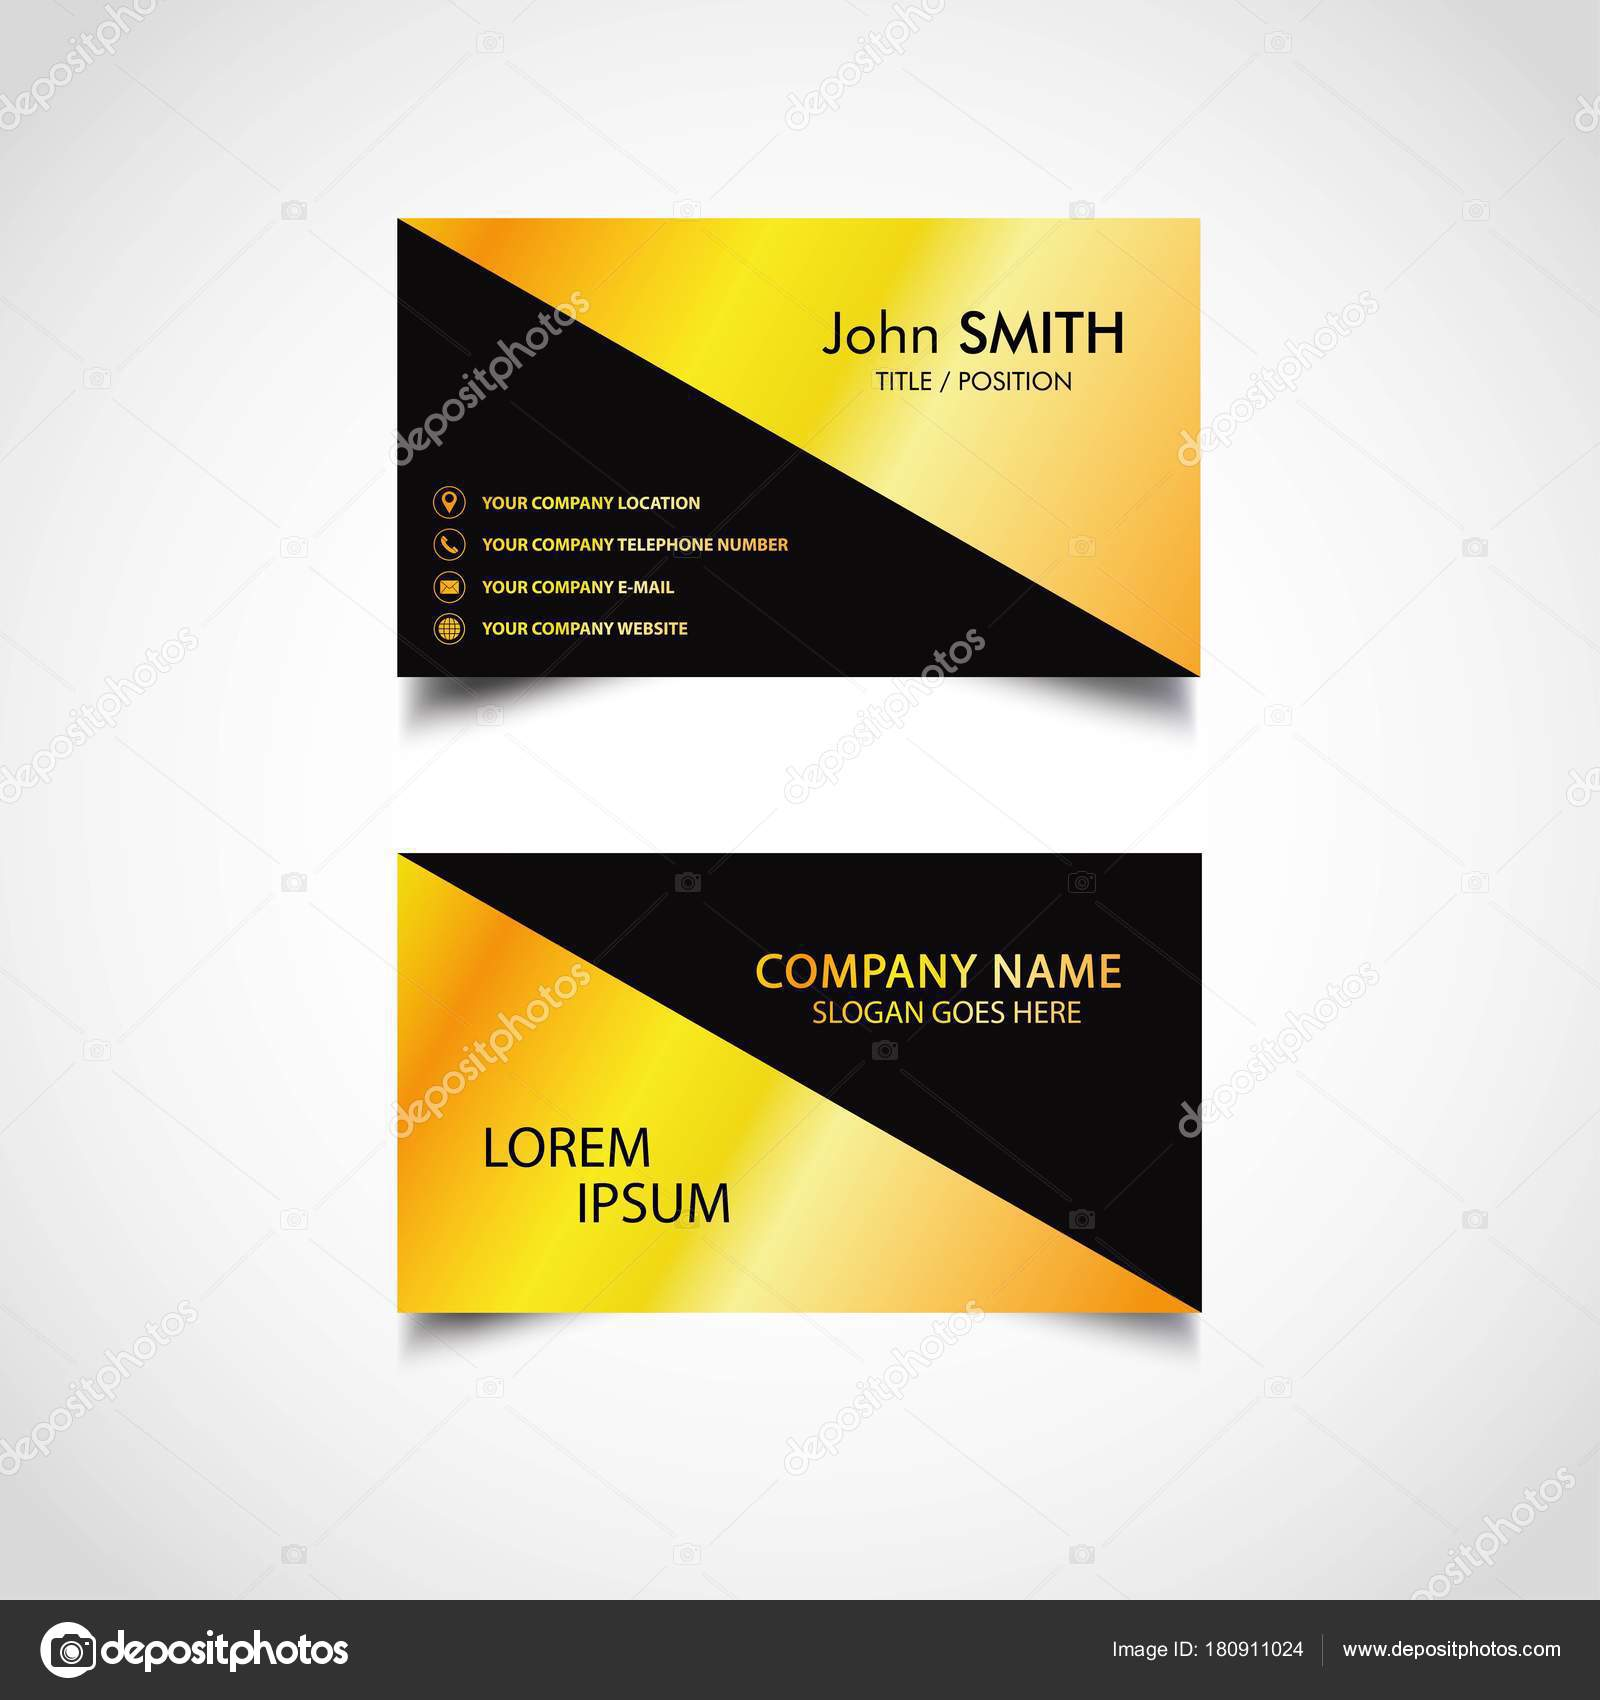 Golden business card template vector illustration eps file stock golden business card template vector illustration eps file stock vector cheaphphosting Gallery